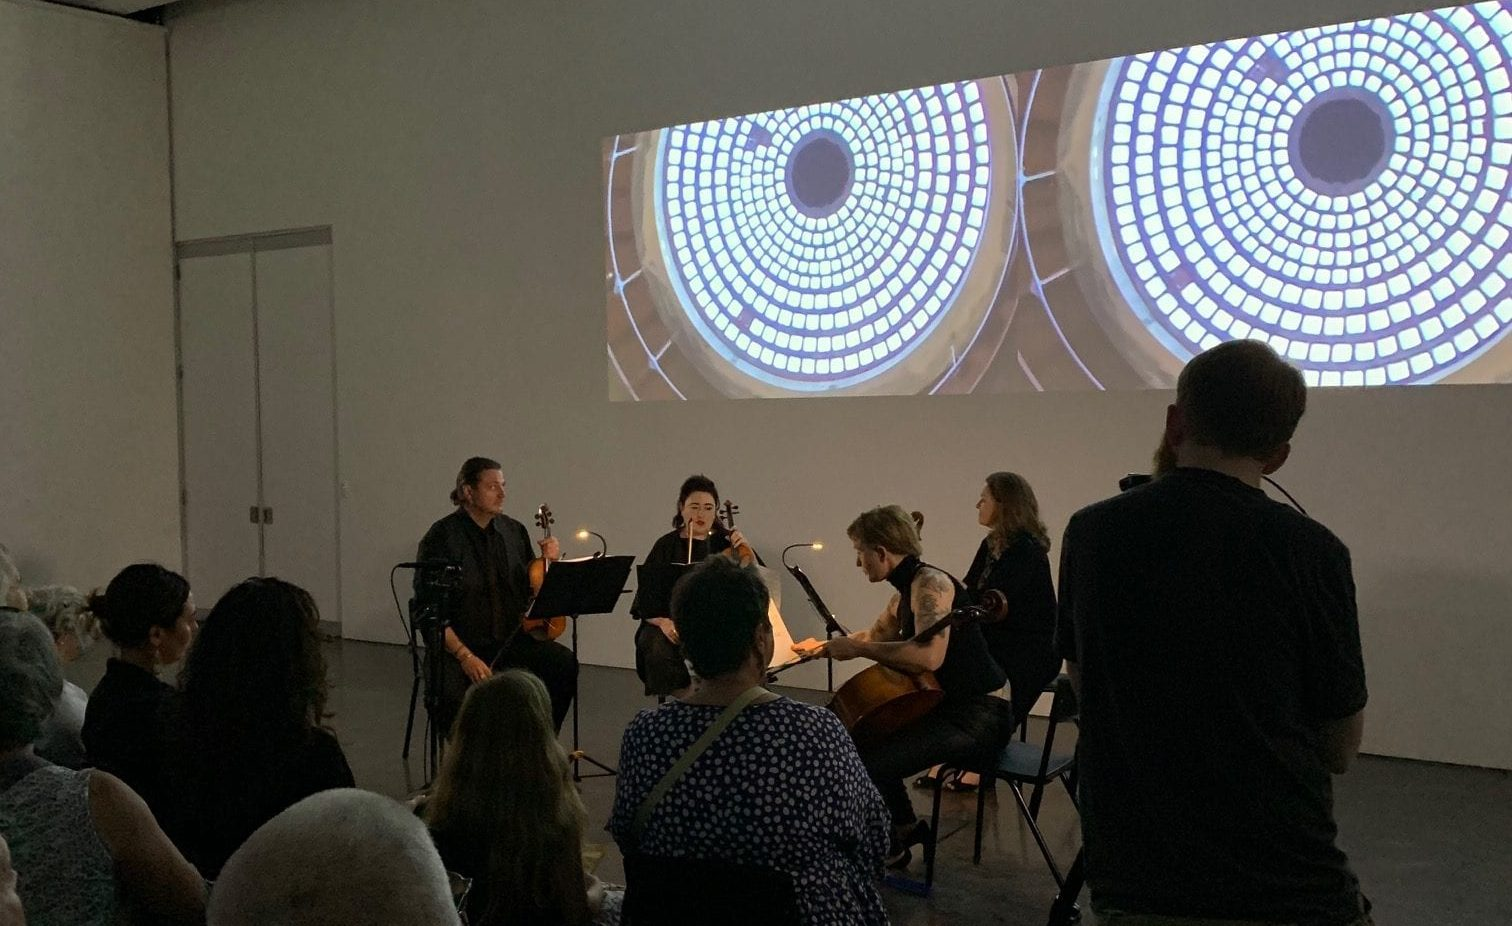 Silo String Quartet performing Mia Salsjo's composition 'Modes of Translation' at Latrobe Regional Gallery, February 2020.